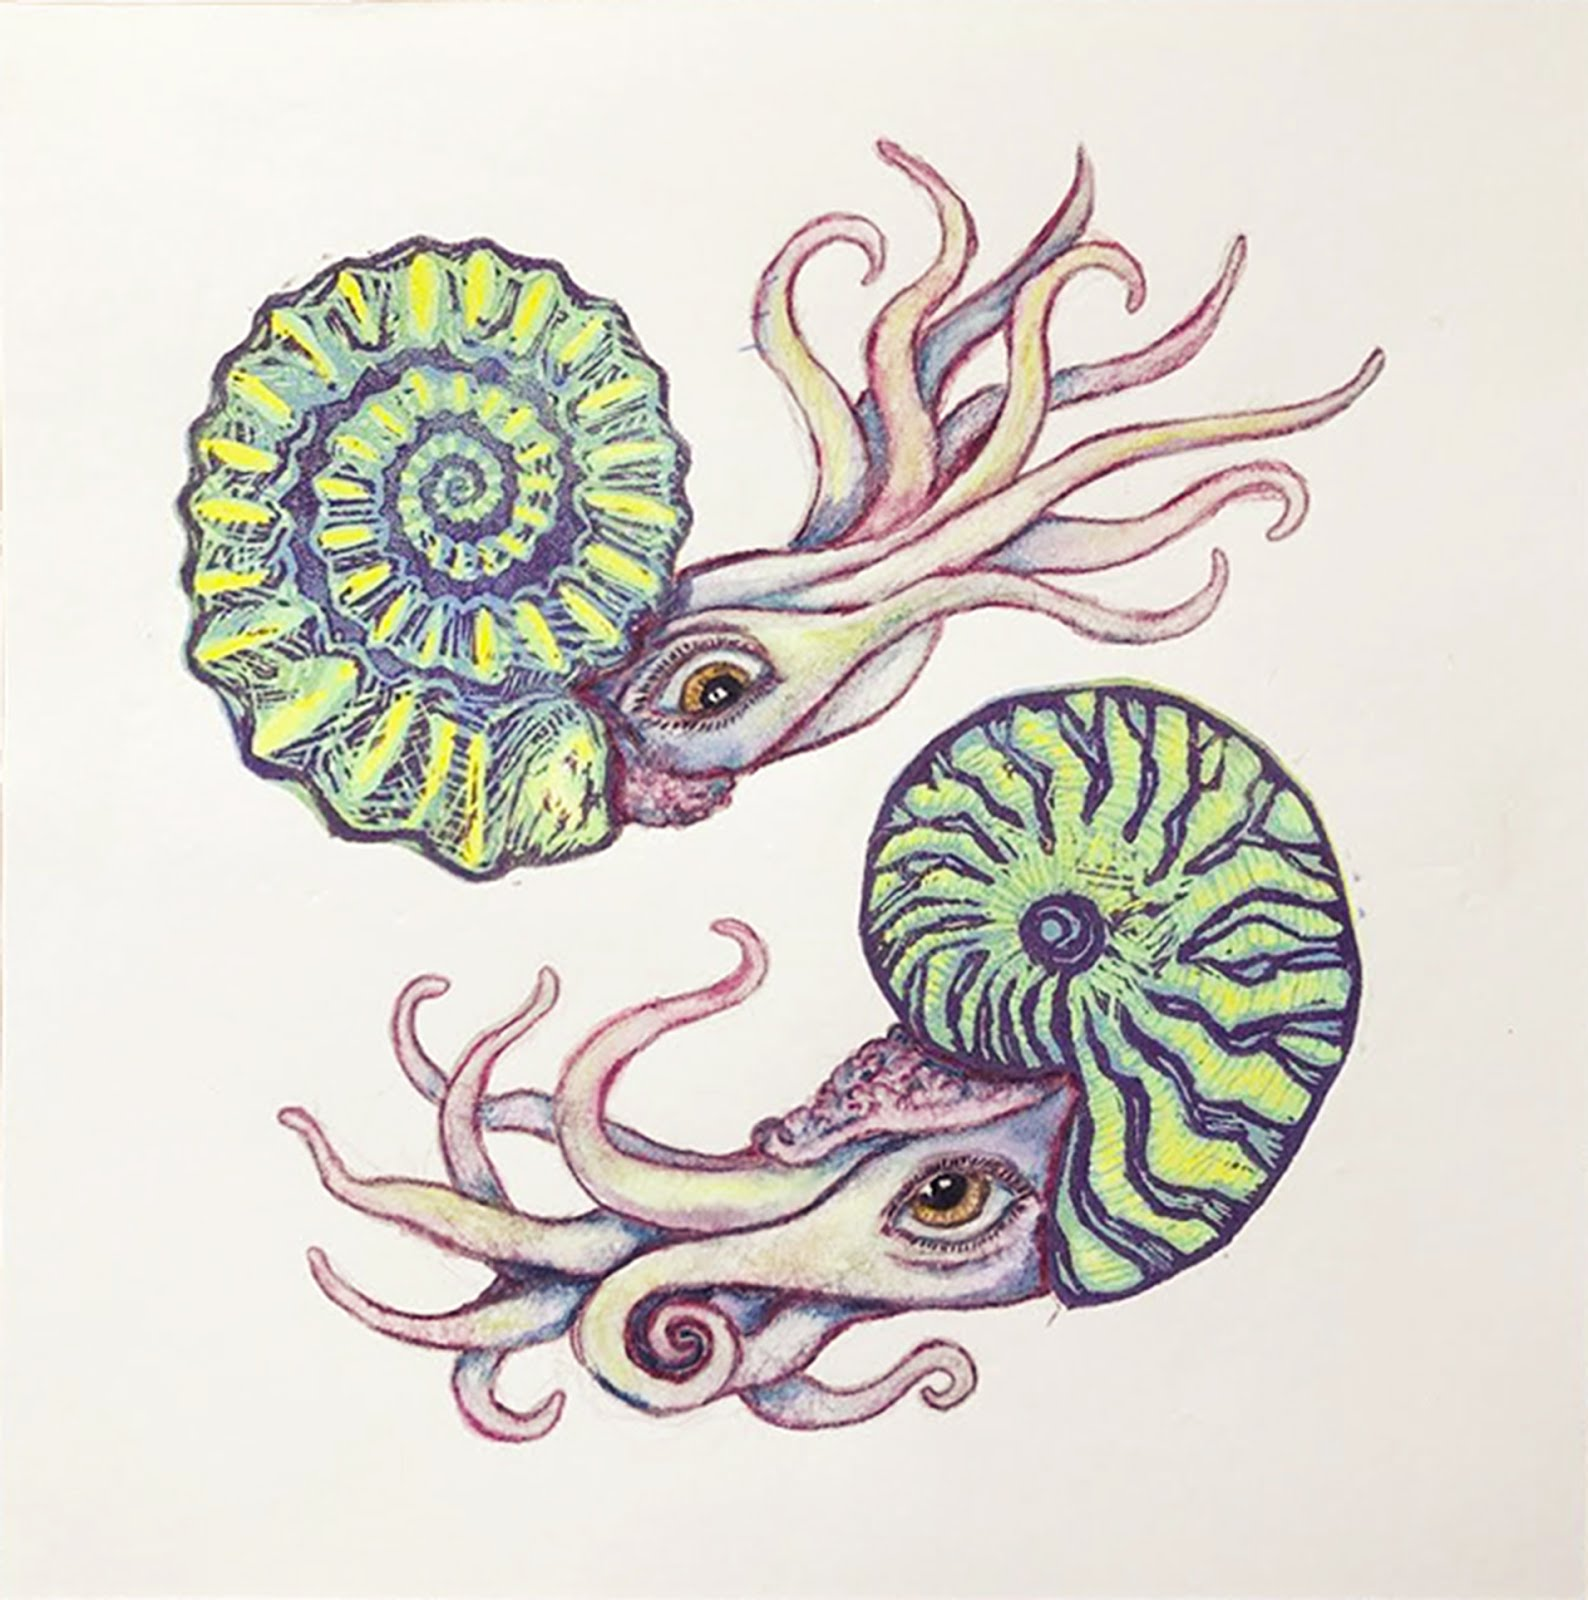 The Nautilus and the Ammonite book is published! Info coming soon on how to order.